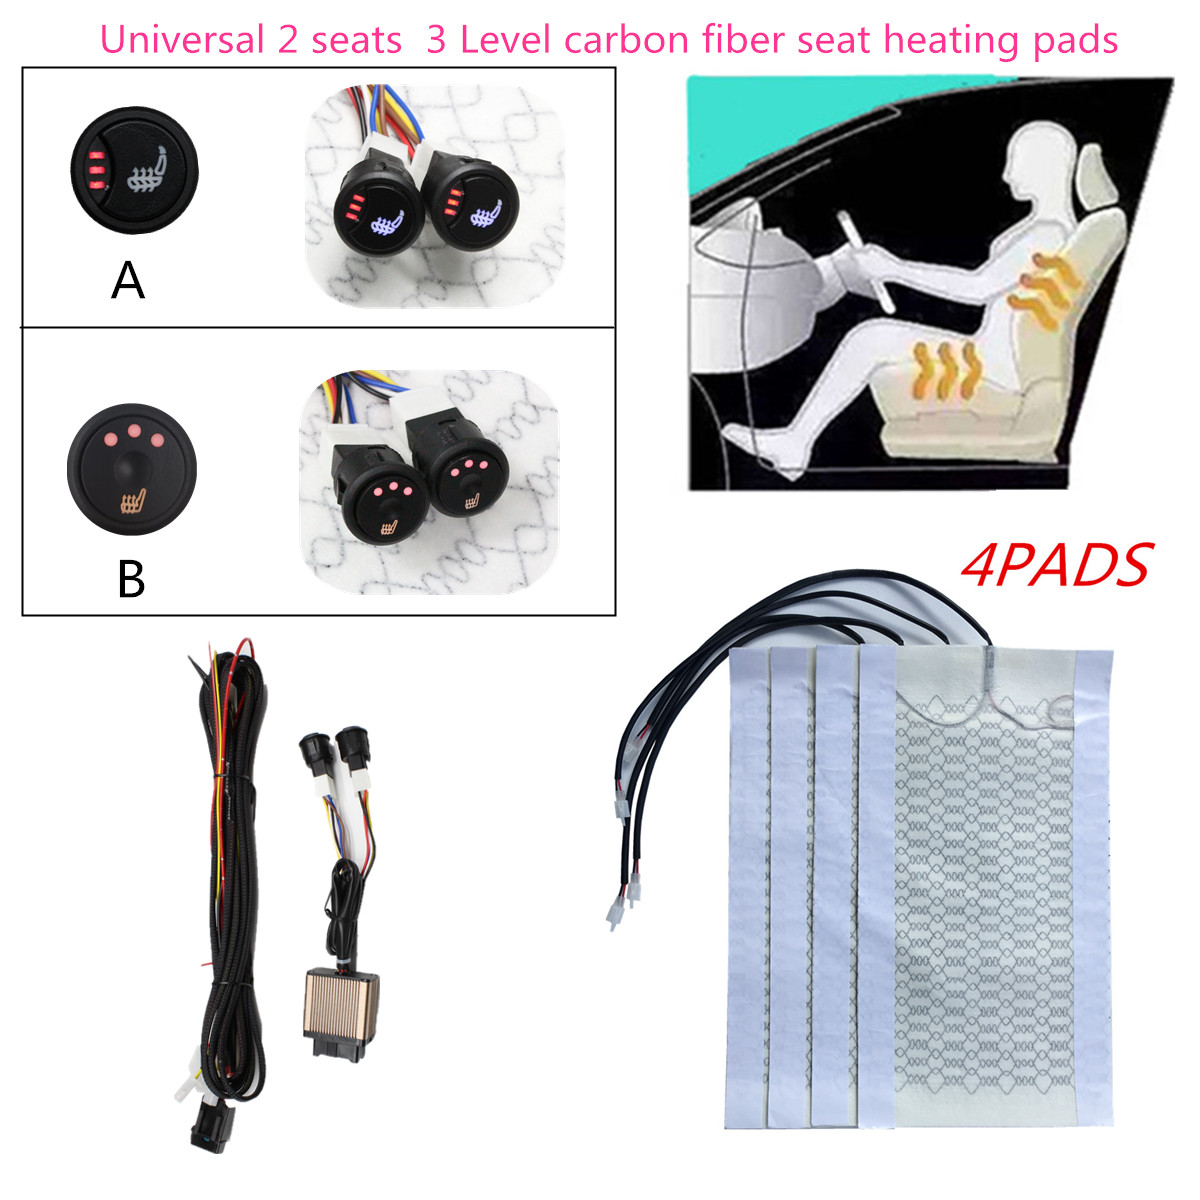 Upgrade 12v Seat Heating For Car  Beautiful Round Switch Carbon Fiber Car Seat Heater For Any  12V Interior  Seat Covers